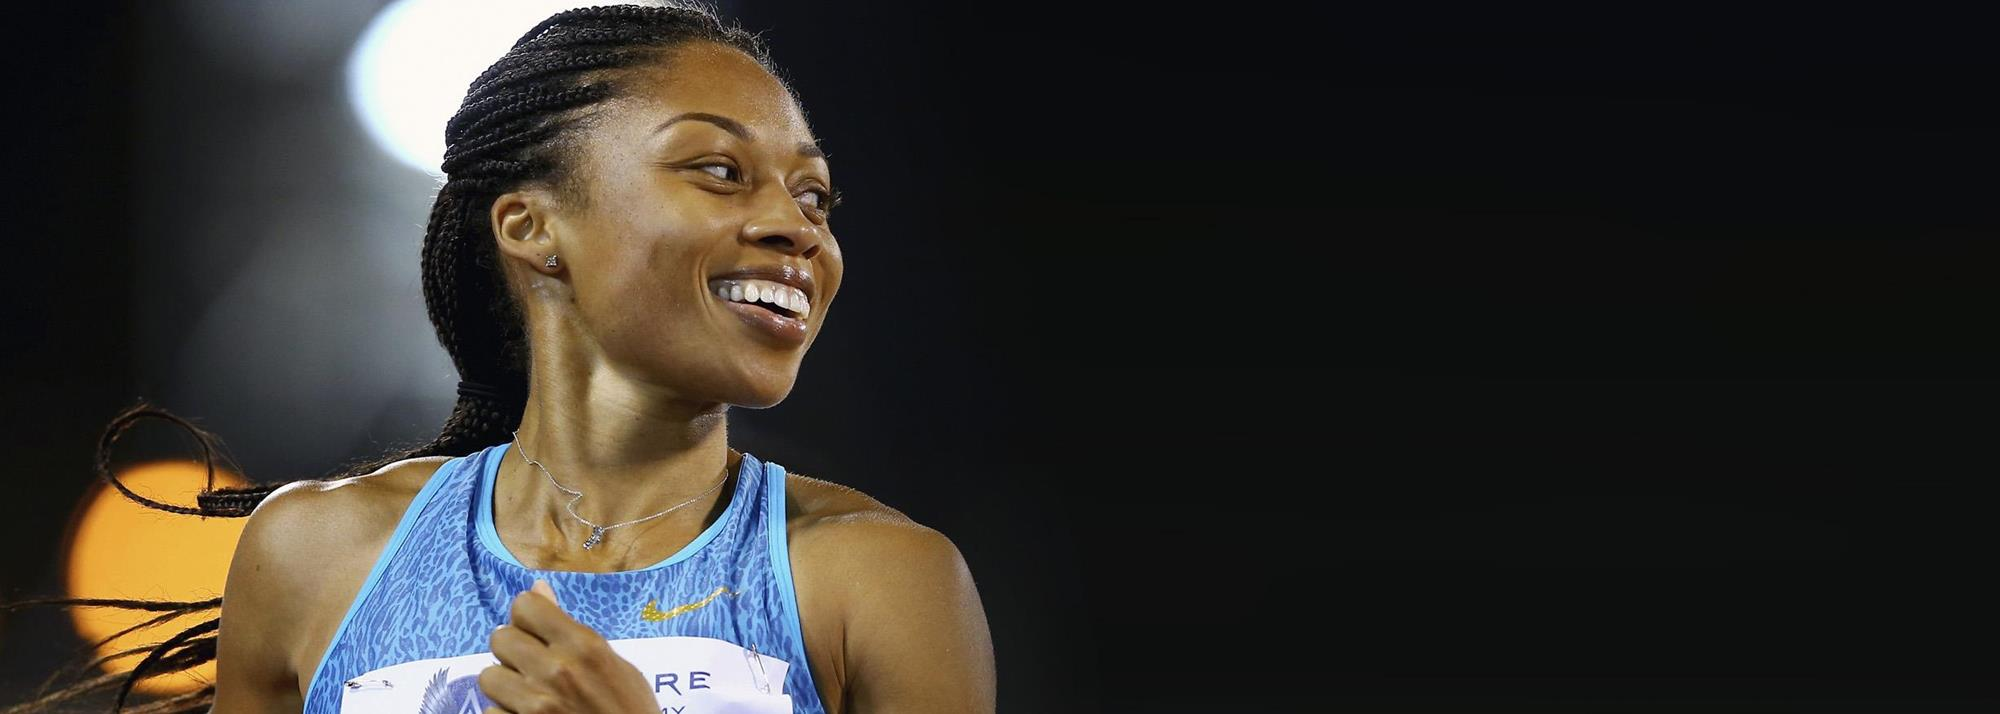 Global champions ready to get back on track for Inspiration Games